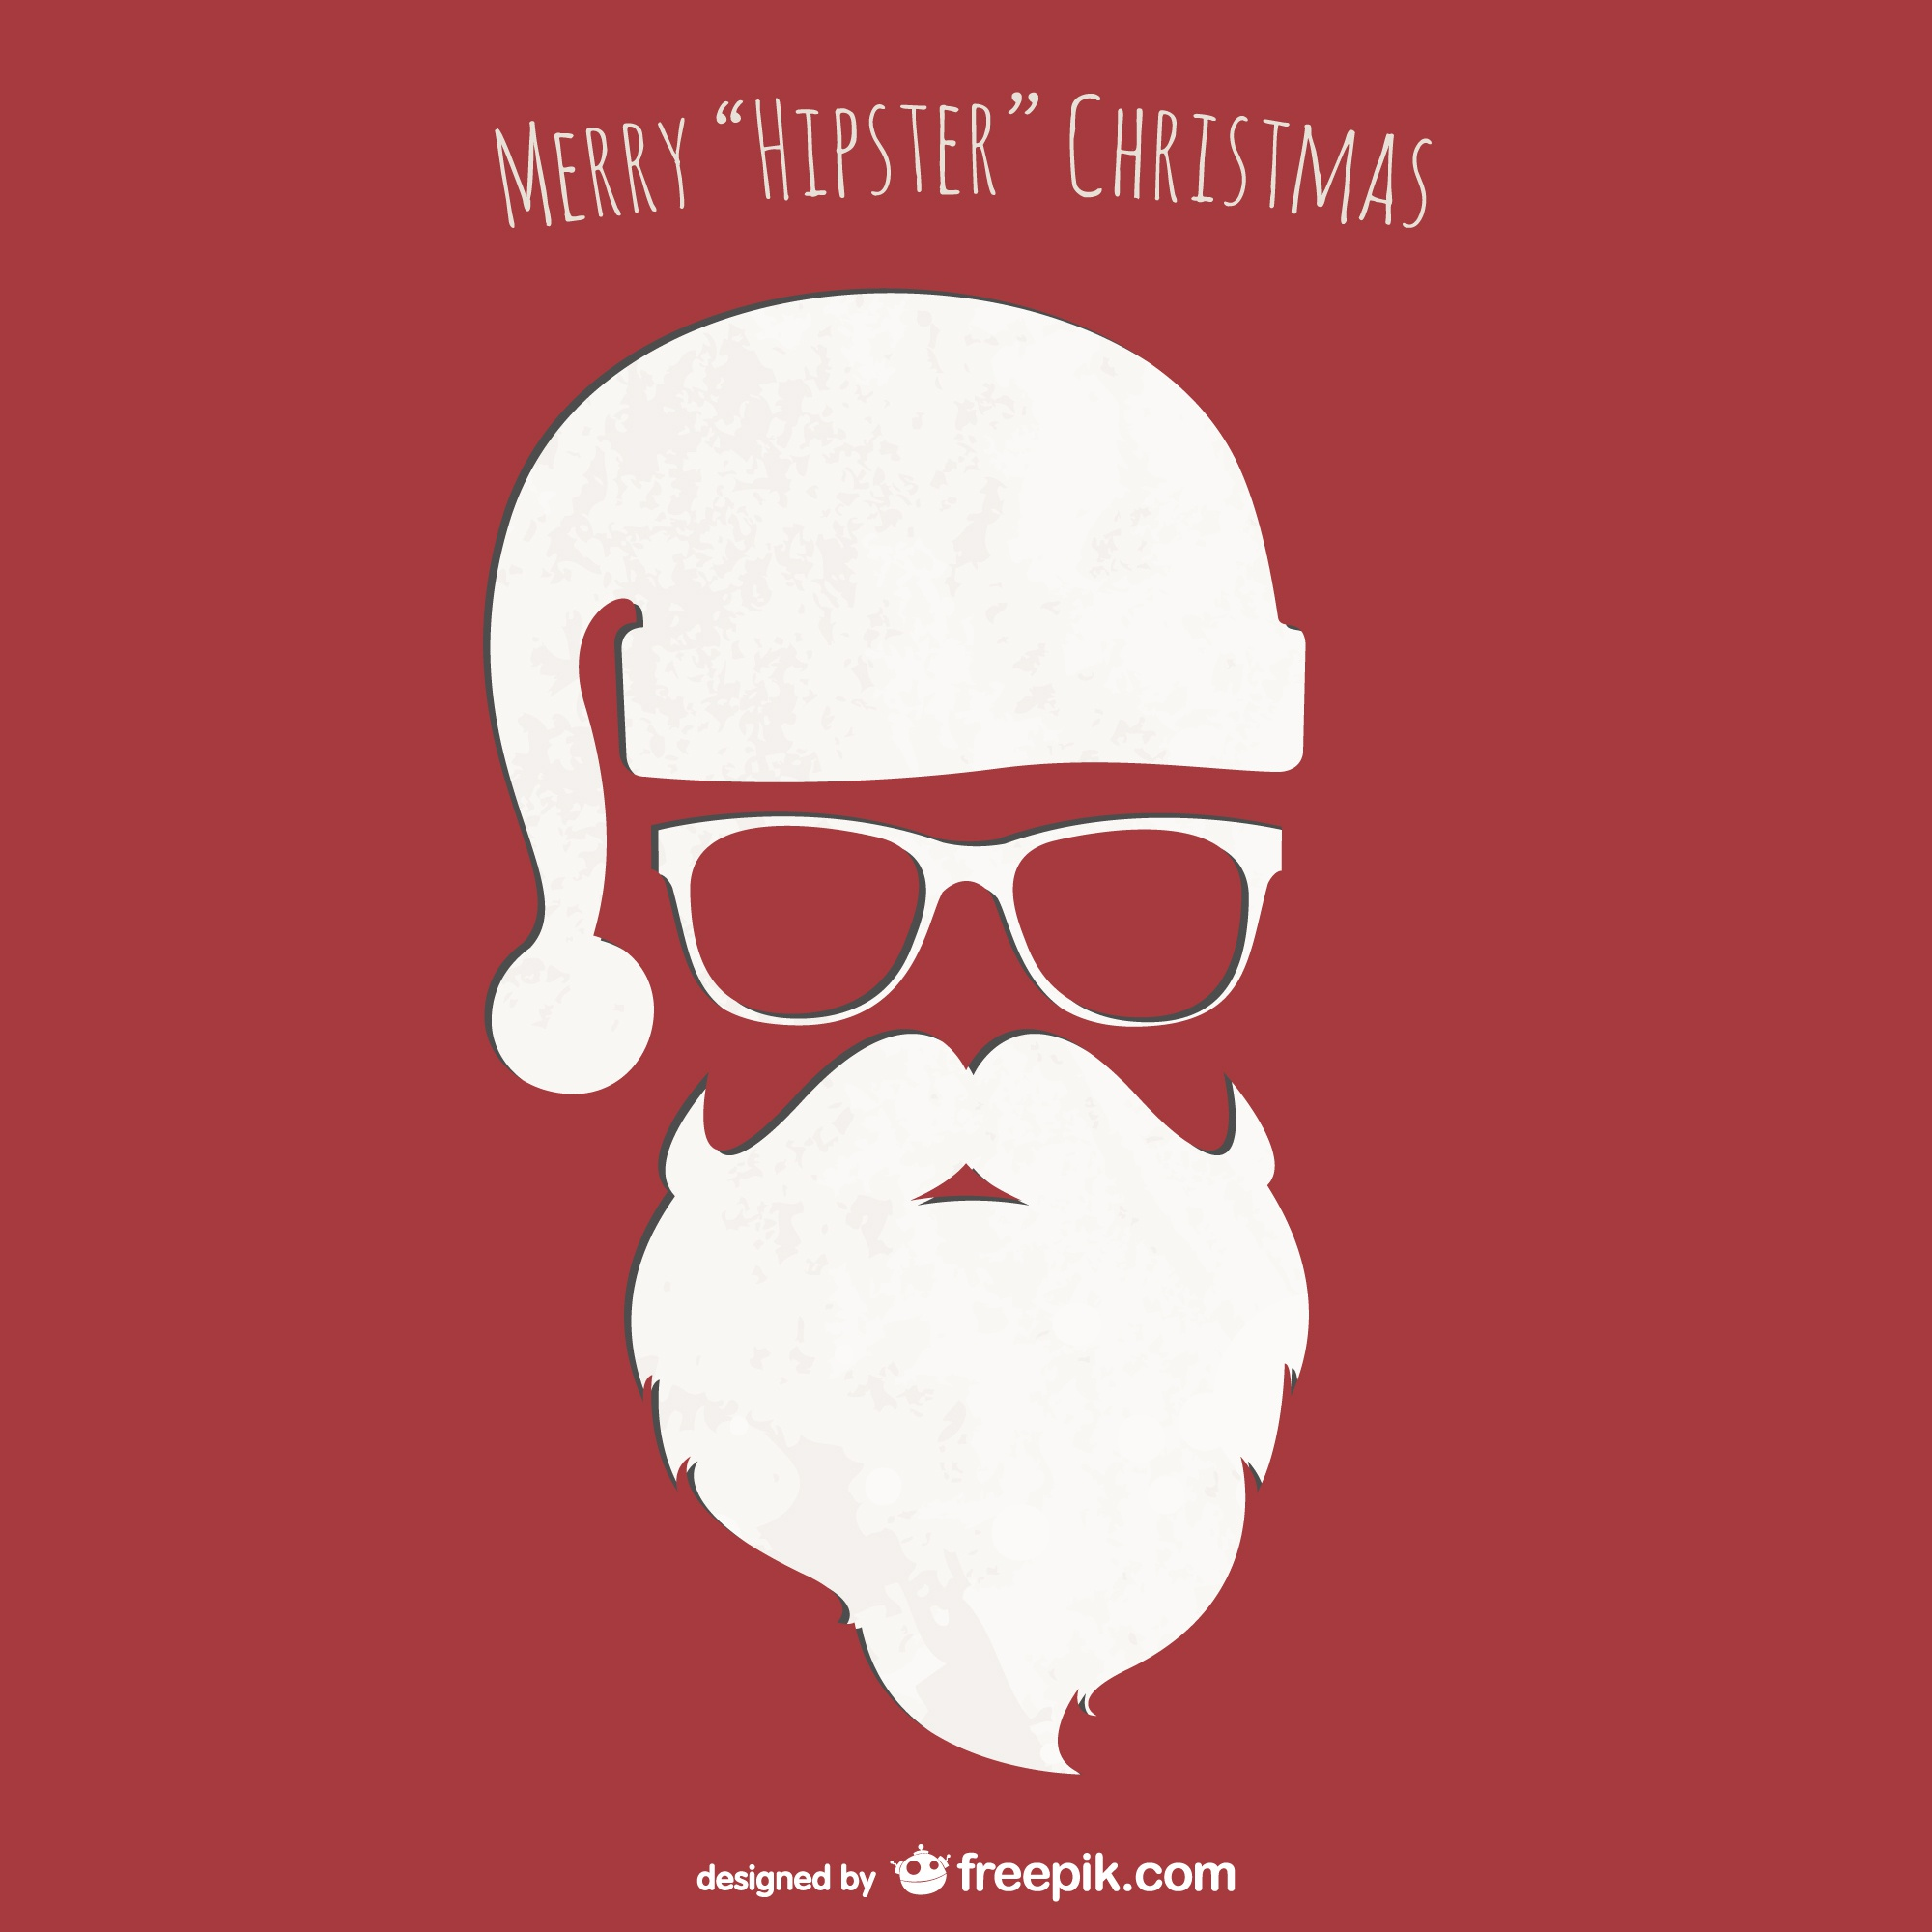 Hipster Christmas card vector